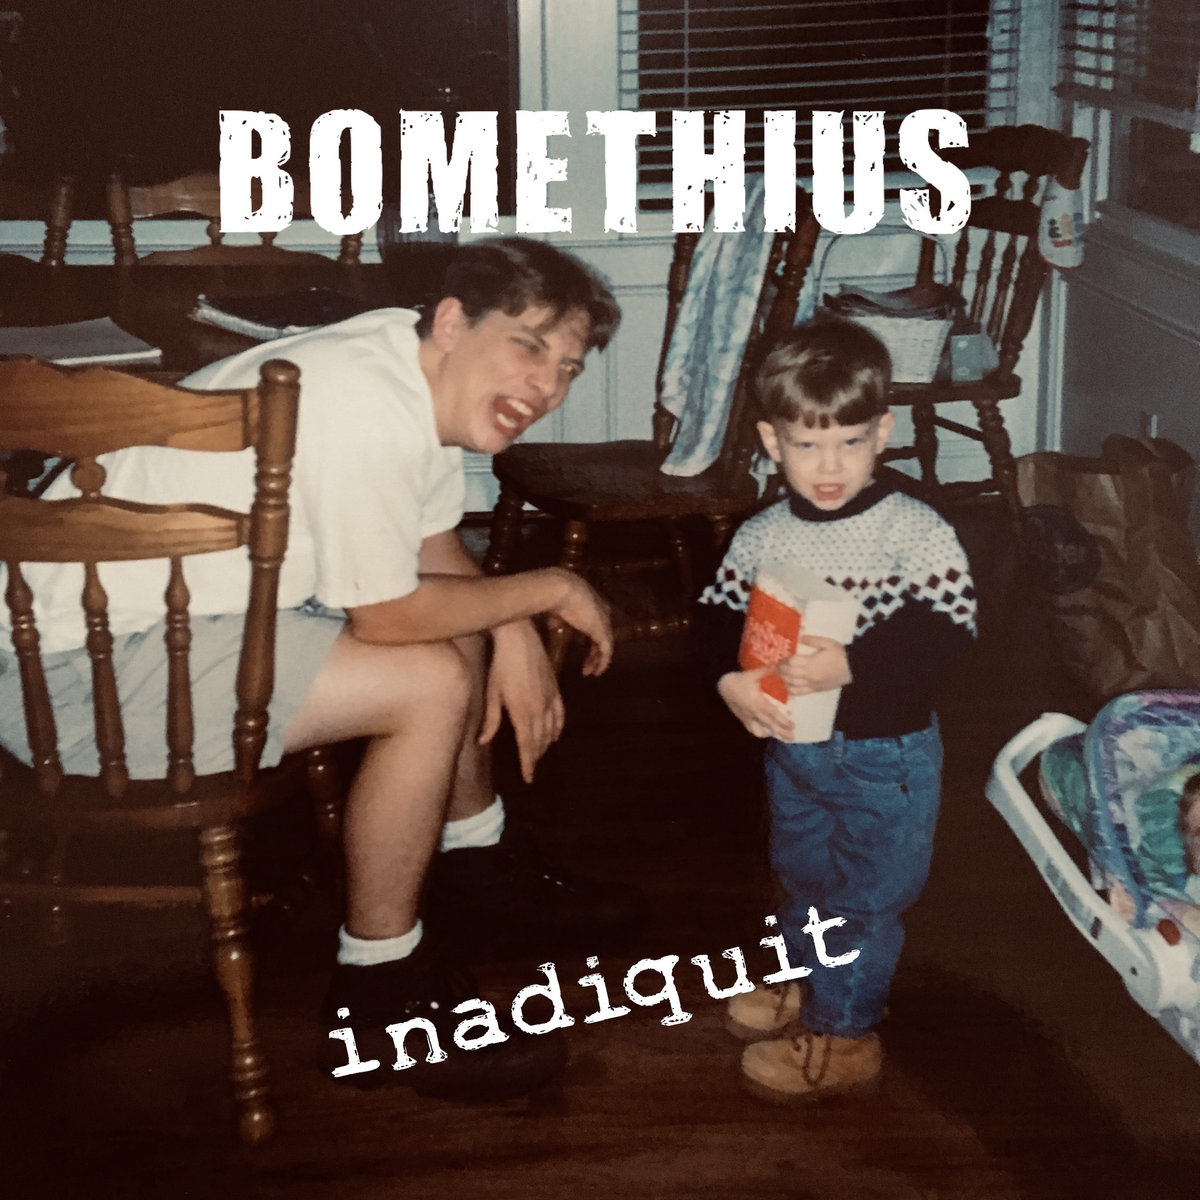 Guest Post by Bomethius – The Machine